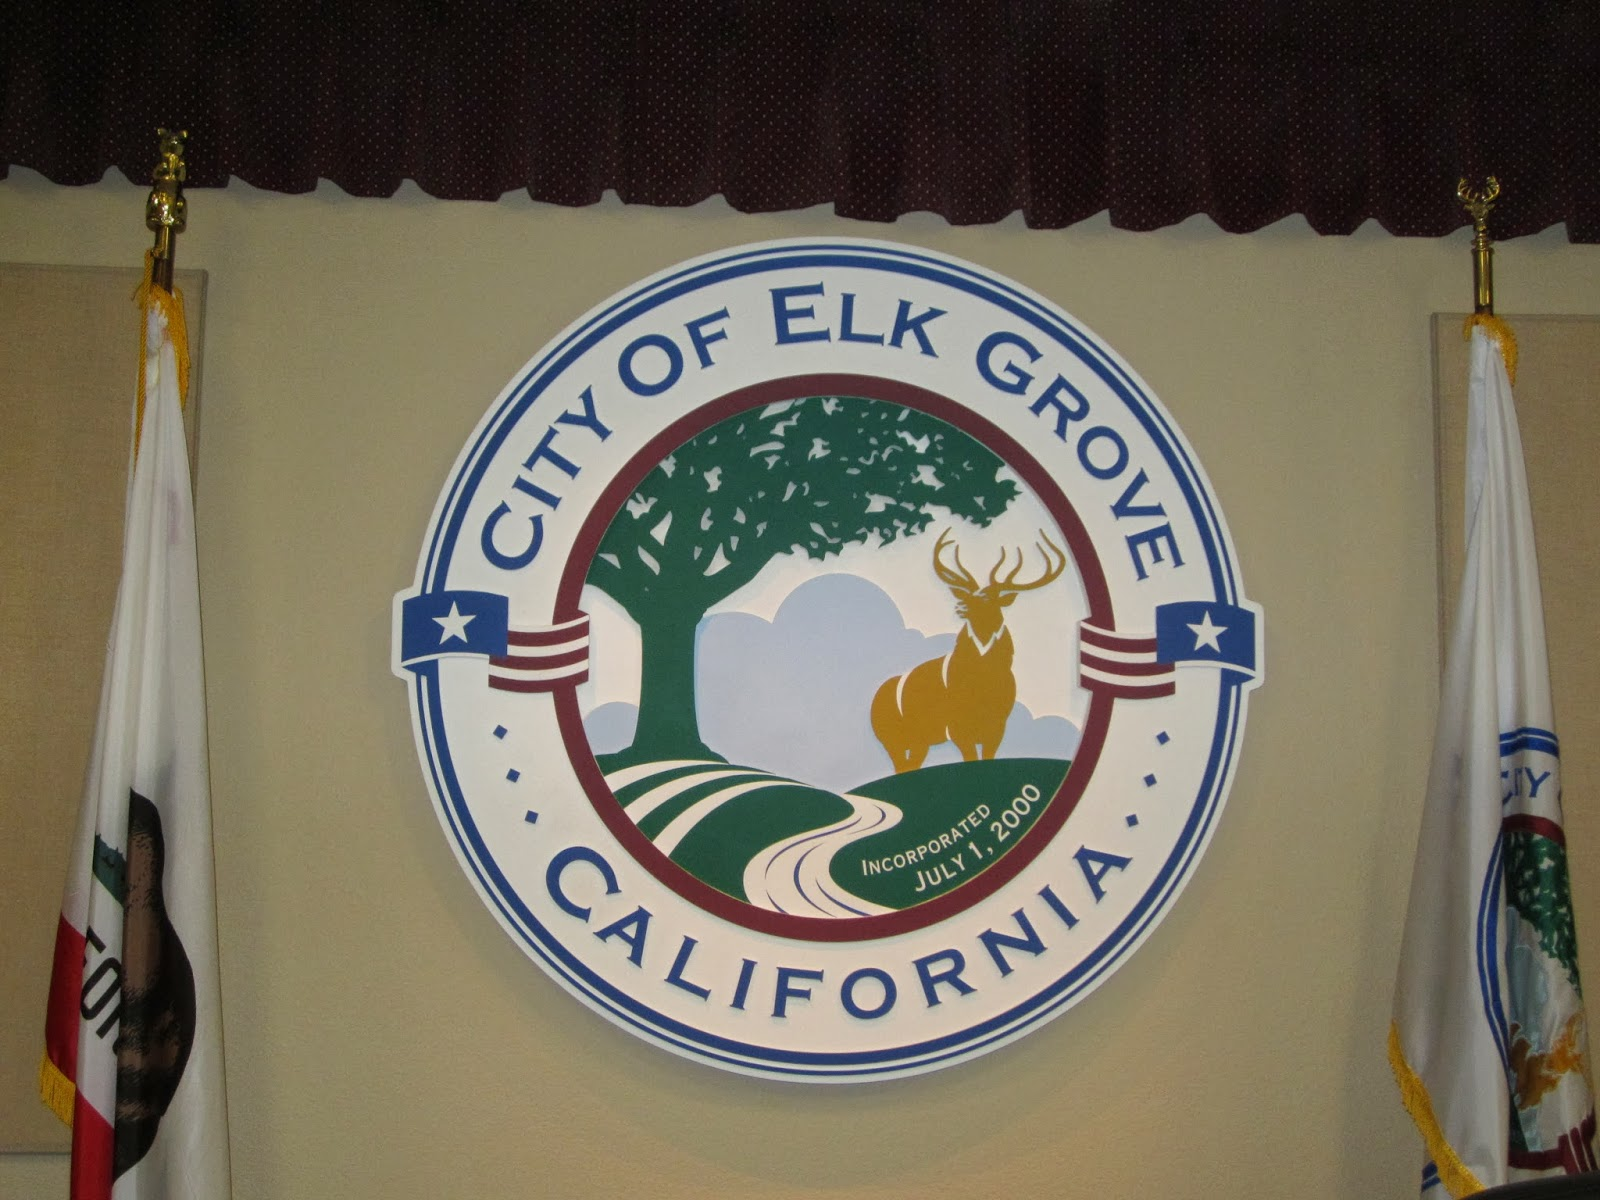 Statement From Elk Grove Mayor Gary Davis Regarding Proposed Sister City Visit